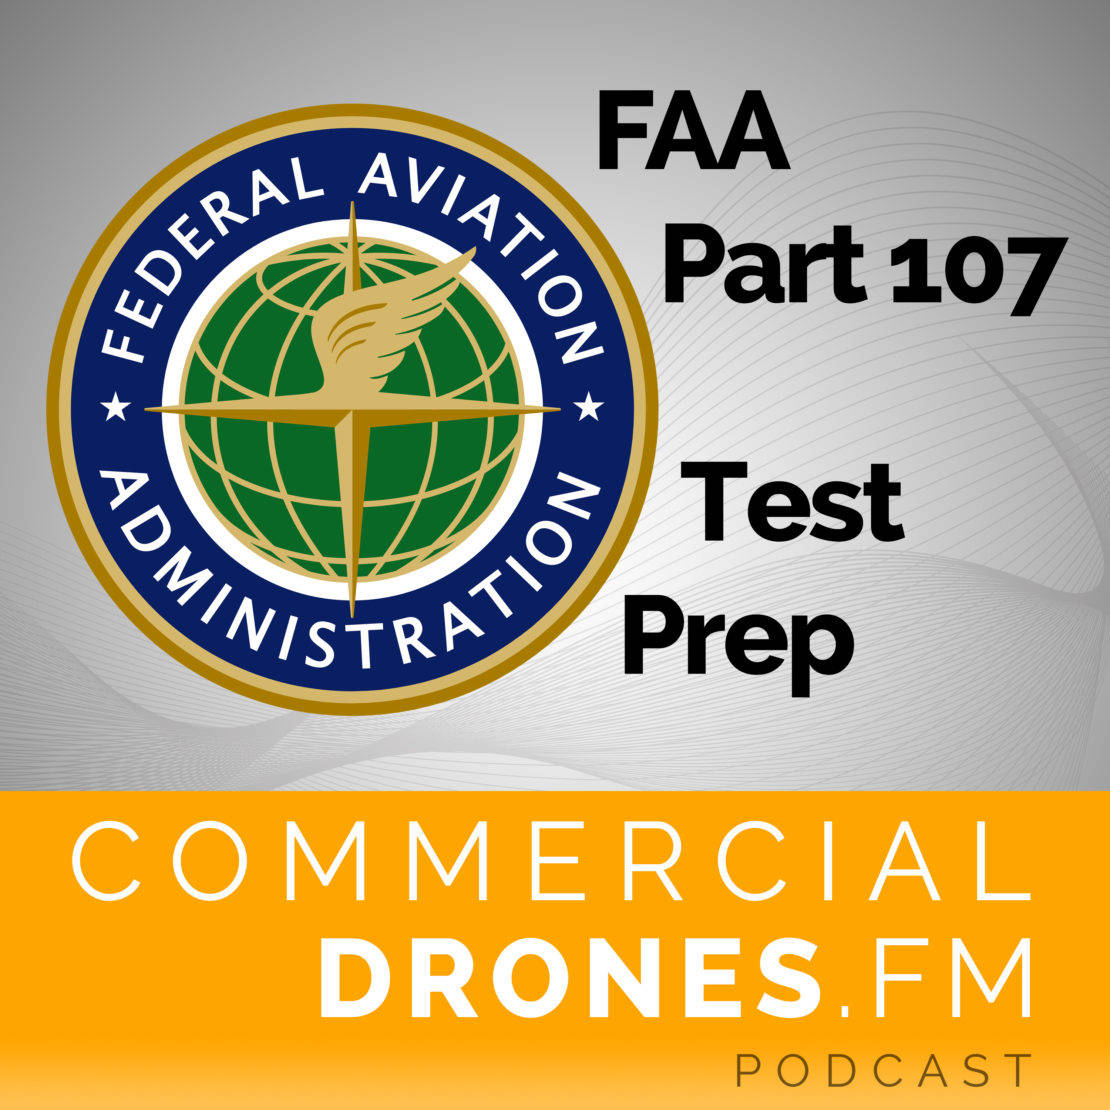 FAA Part 107 Drone Exam Practice Tests - Page 1 | 3DR